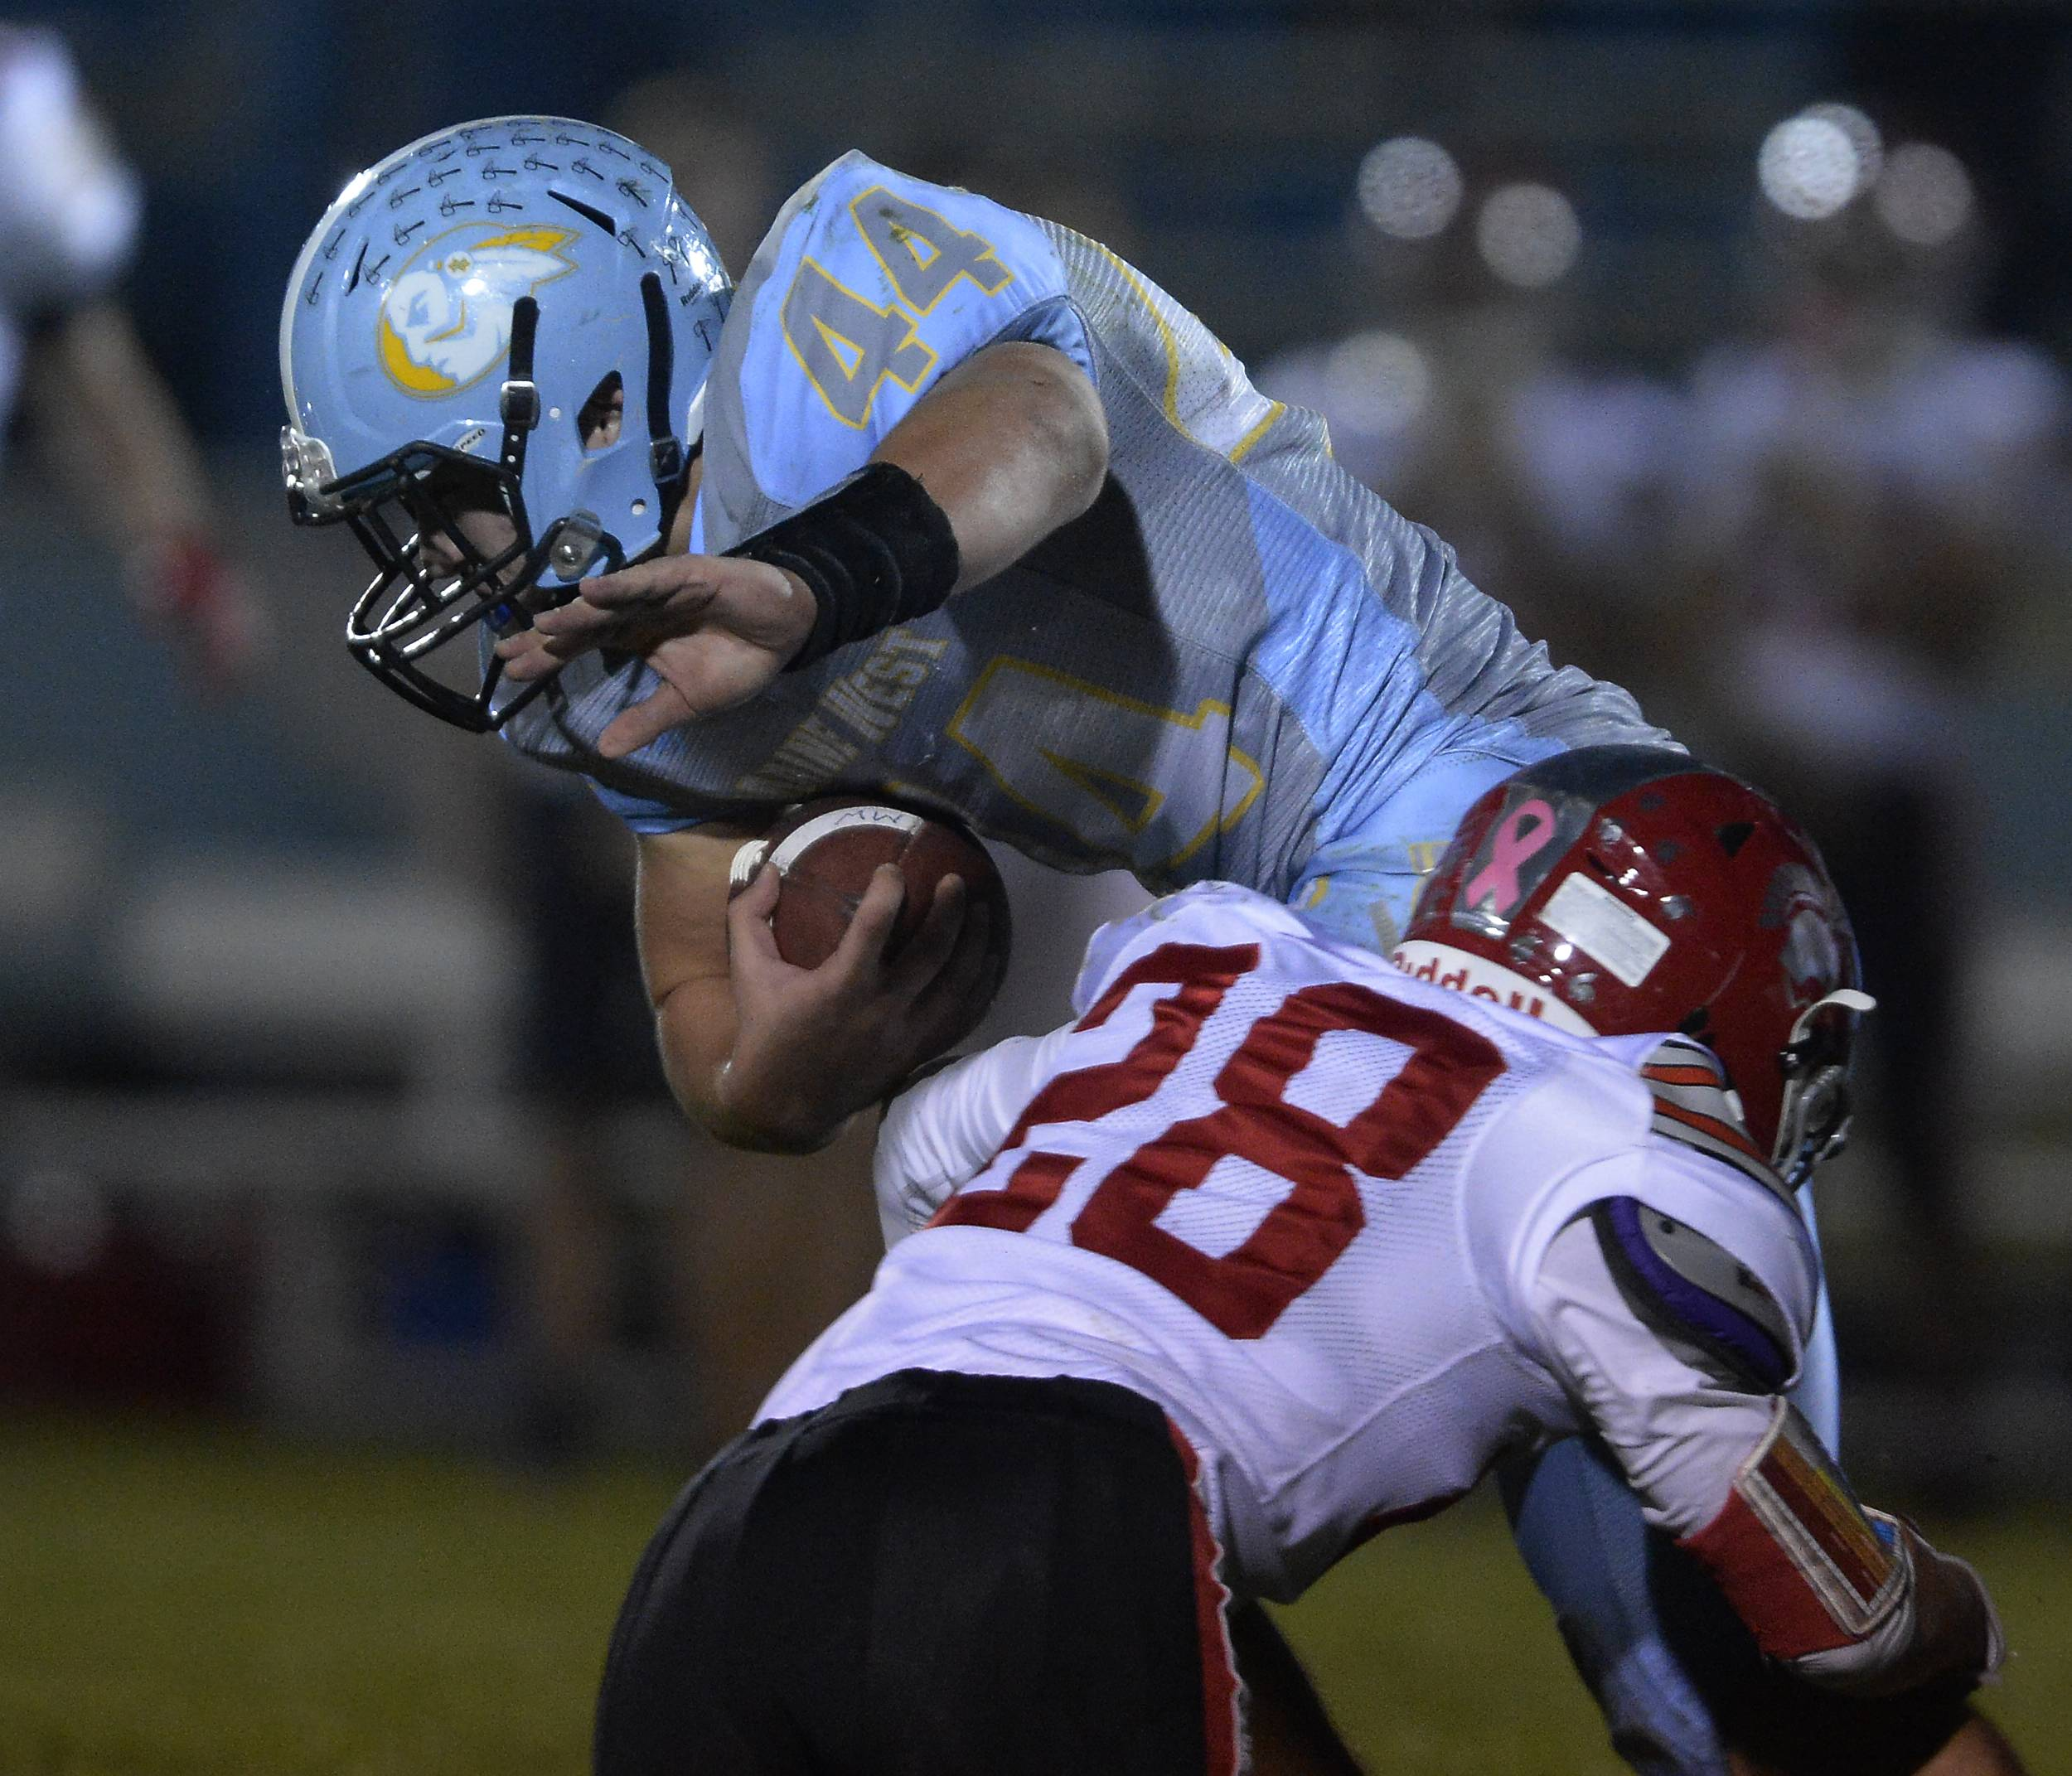 Maine West's Jake Bellizzi battles Deerfield's Adam Pottinger for yardage in the first half Friday at Maine West.